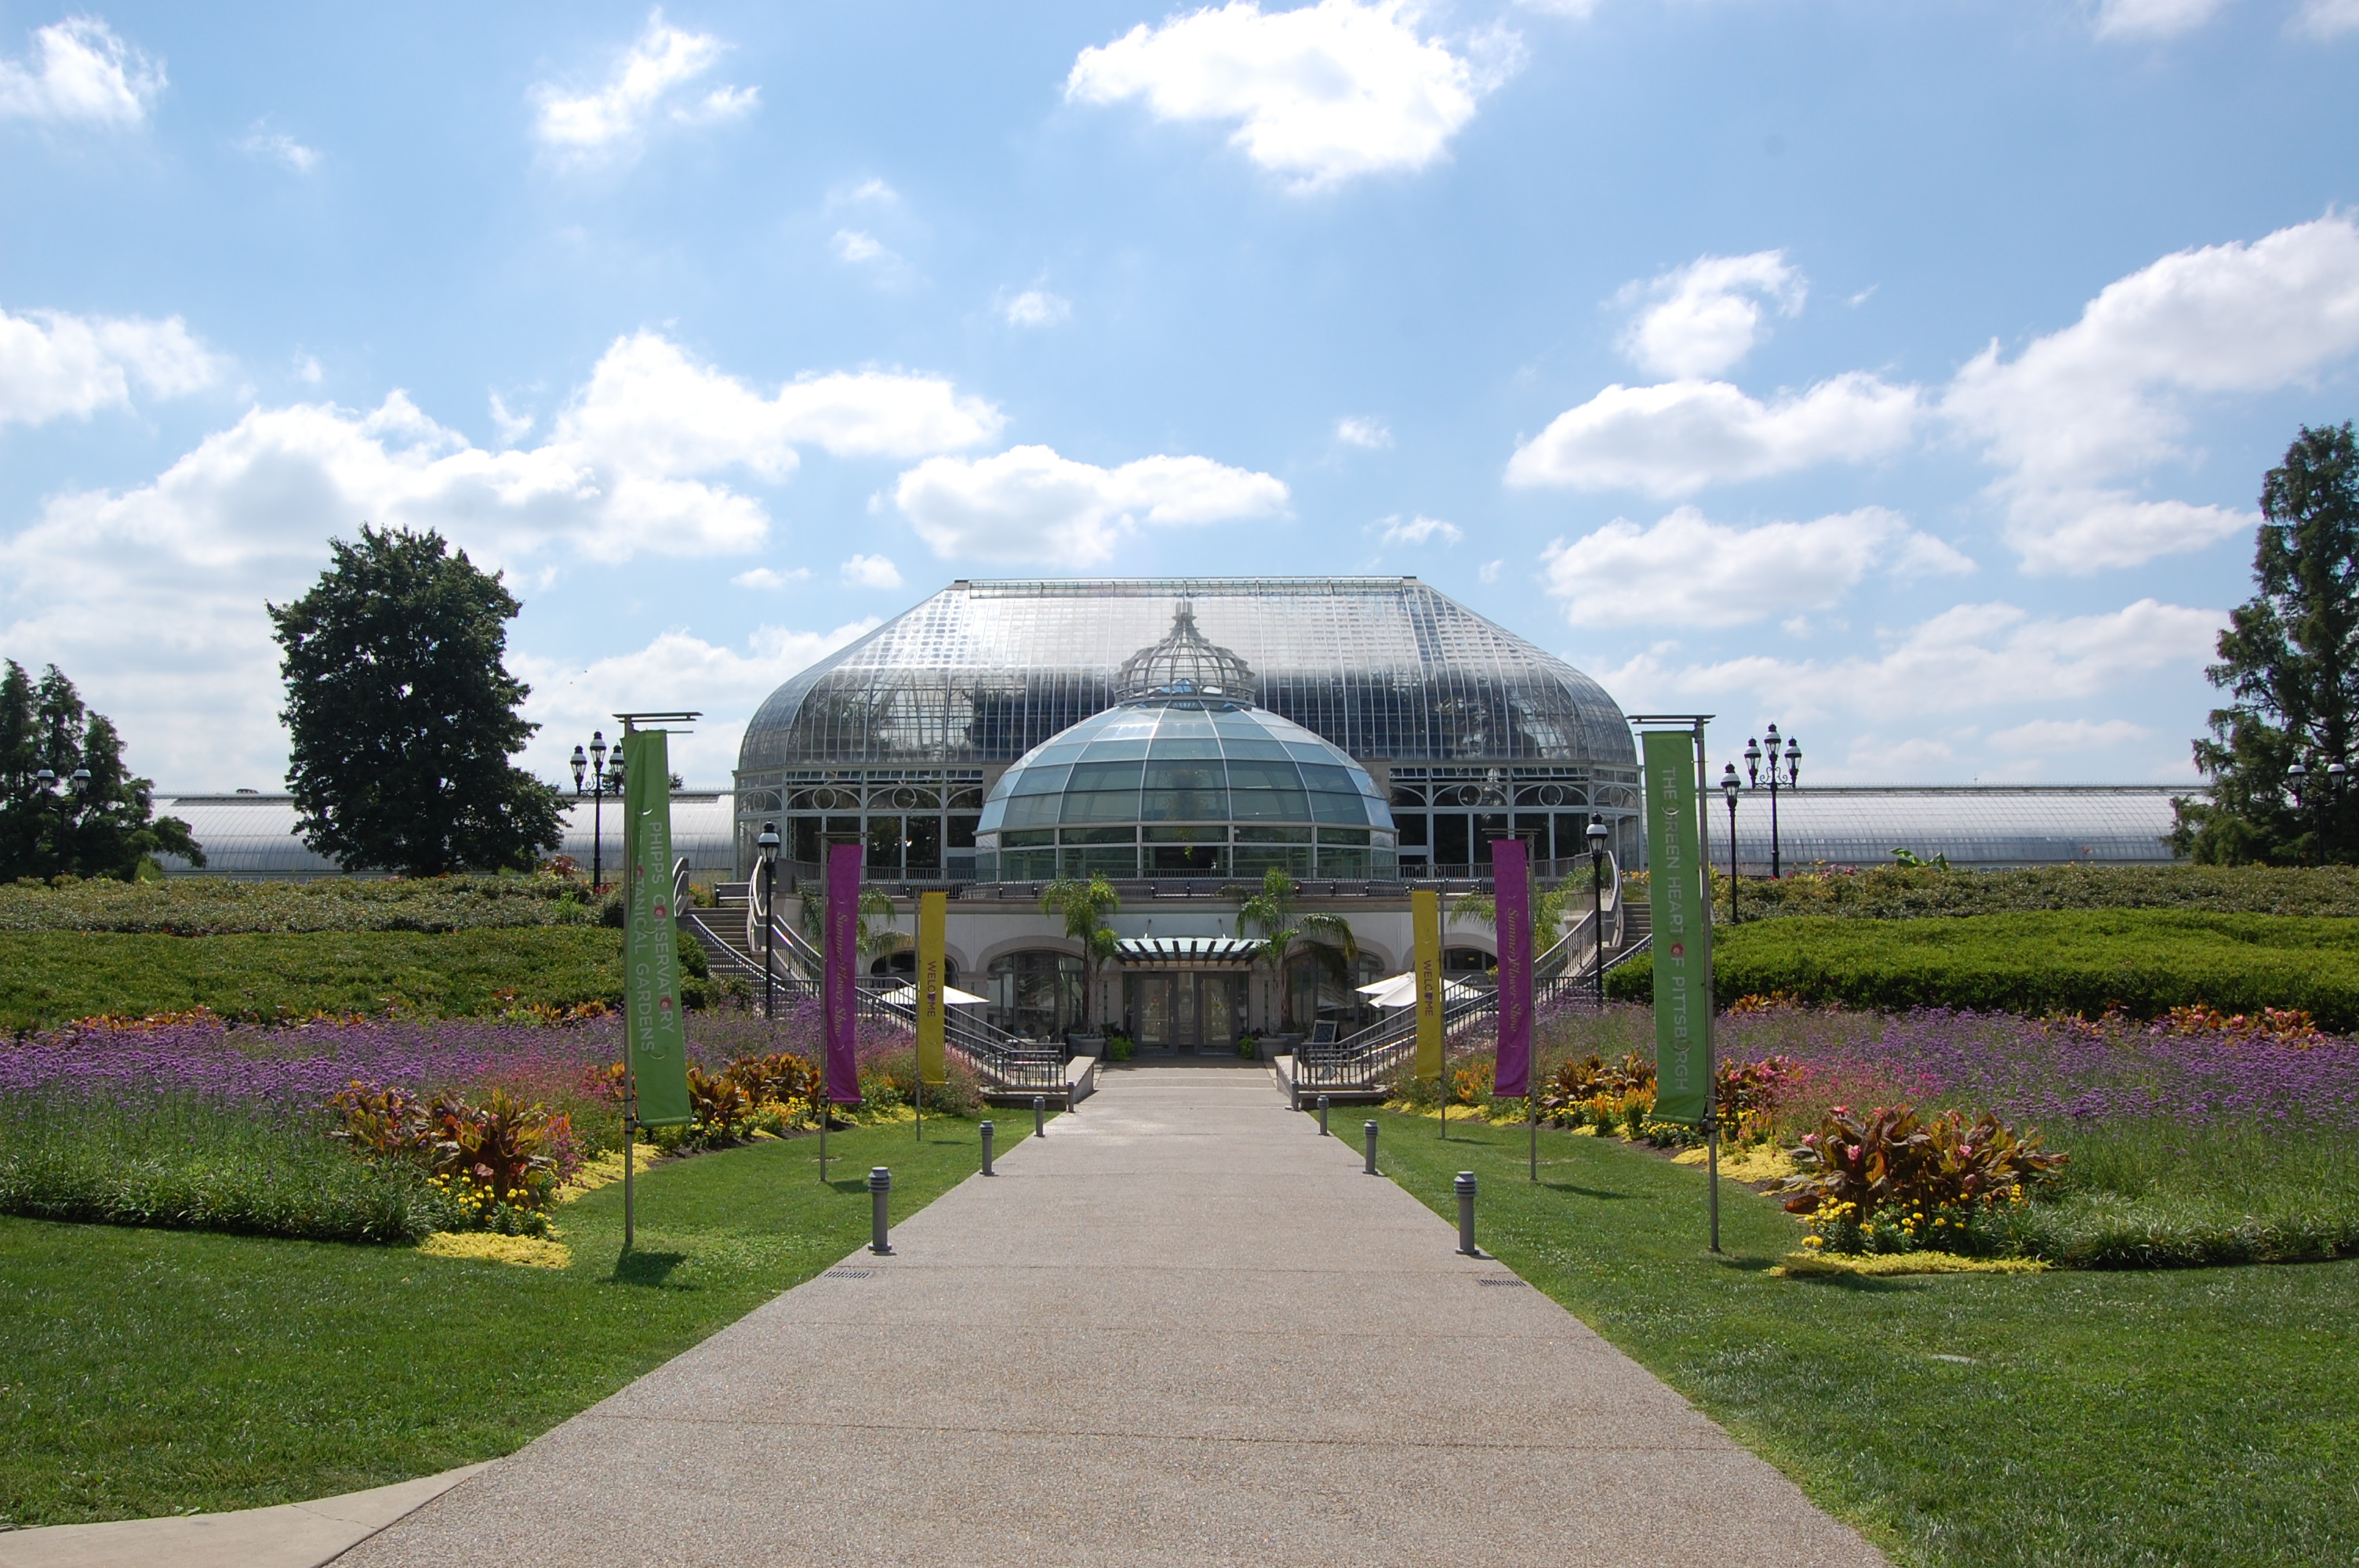 Phipps Conservatory And Botanical Gardens It 39 S About Argen Time